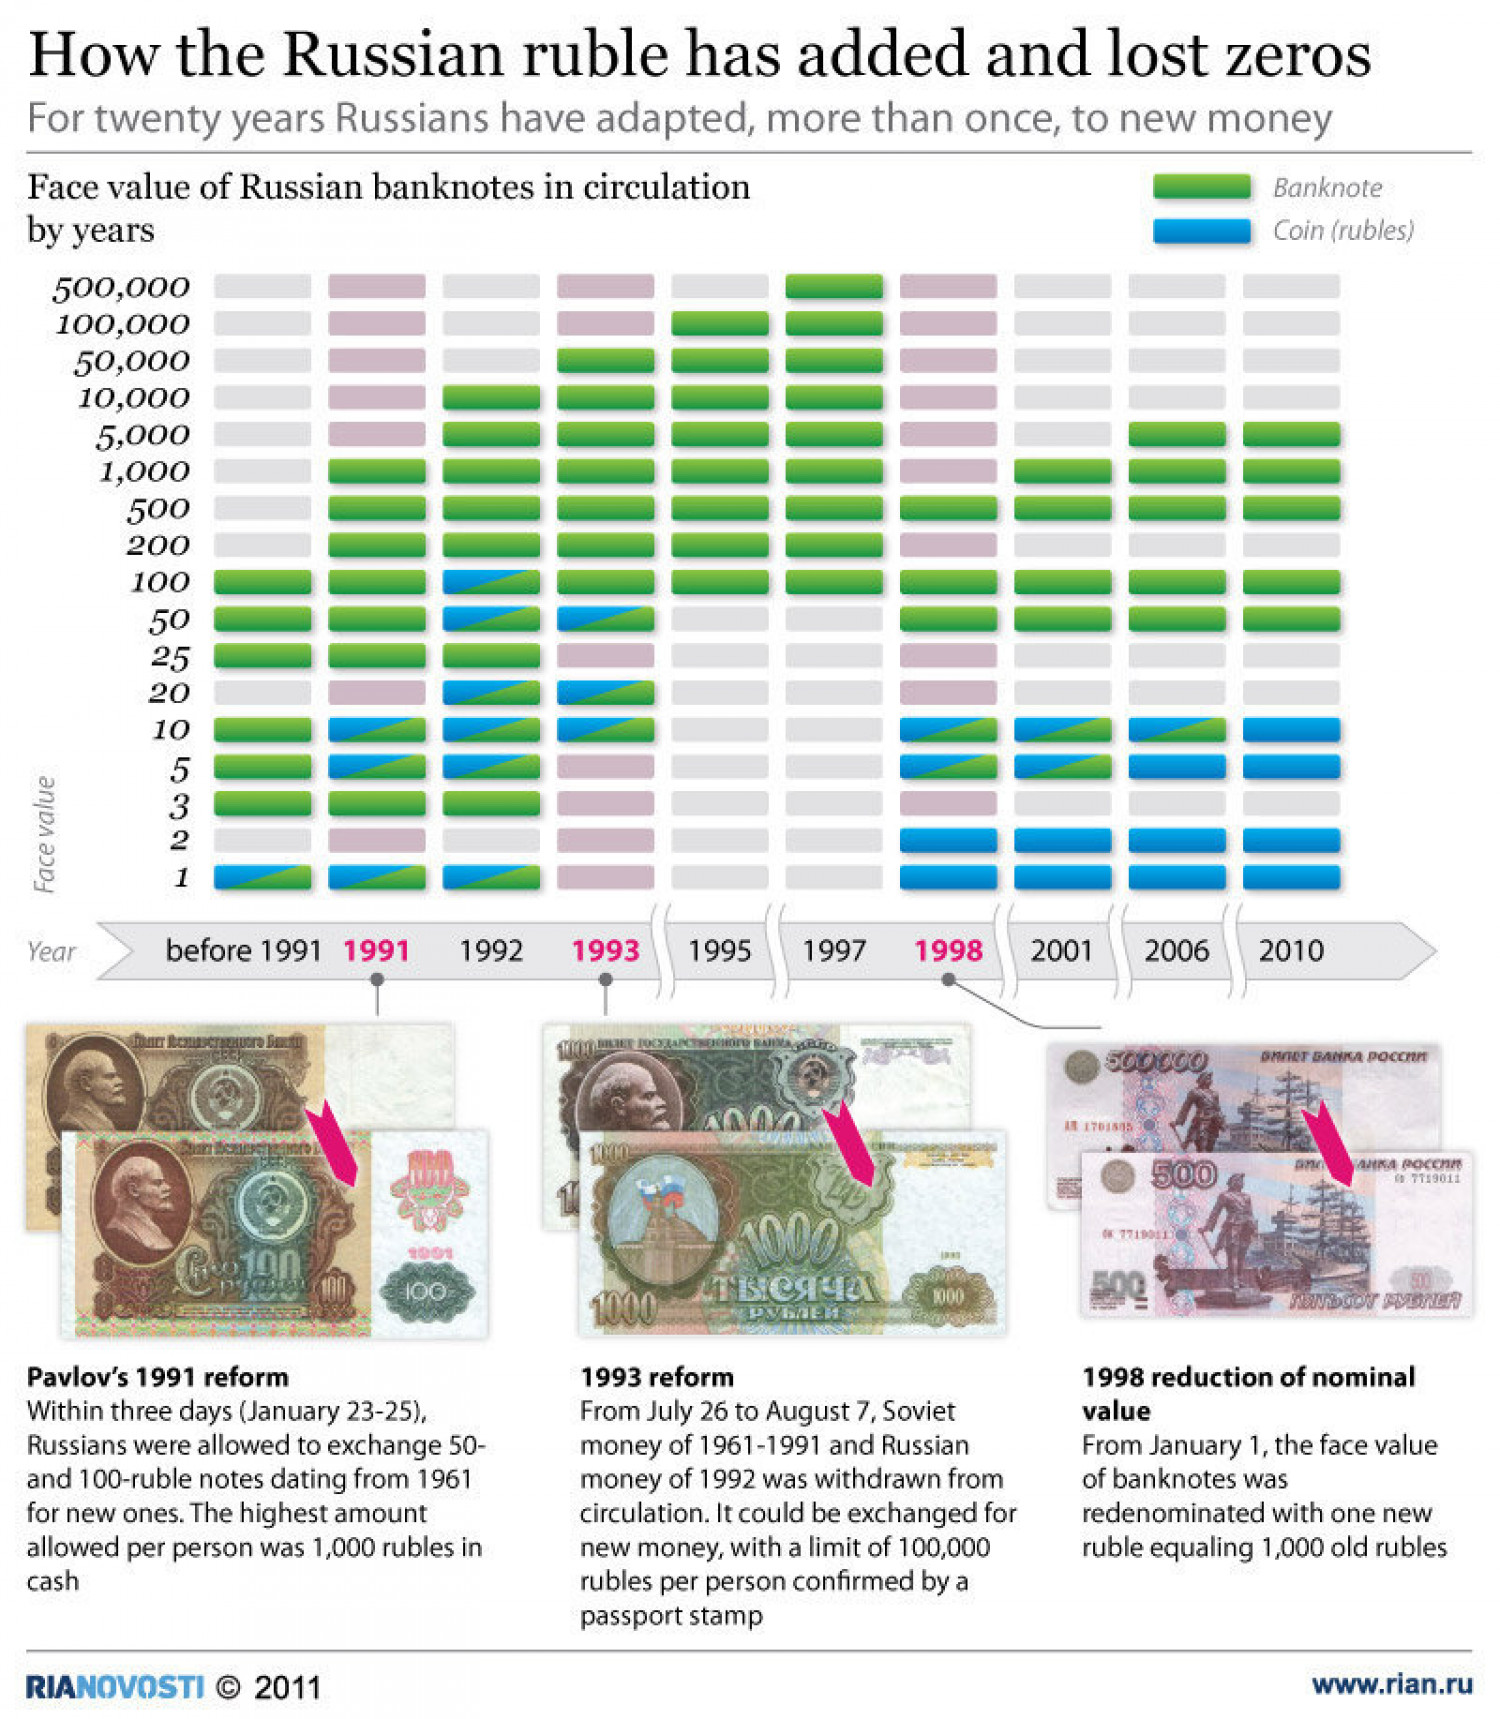 How the Russian ruble has added and lost zeroes Infographic